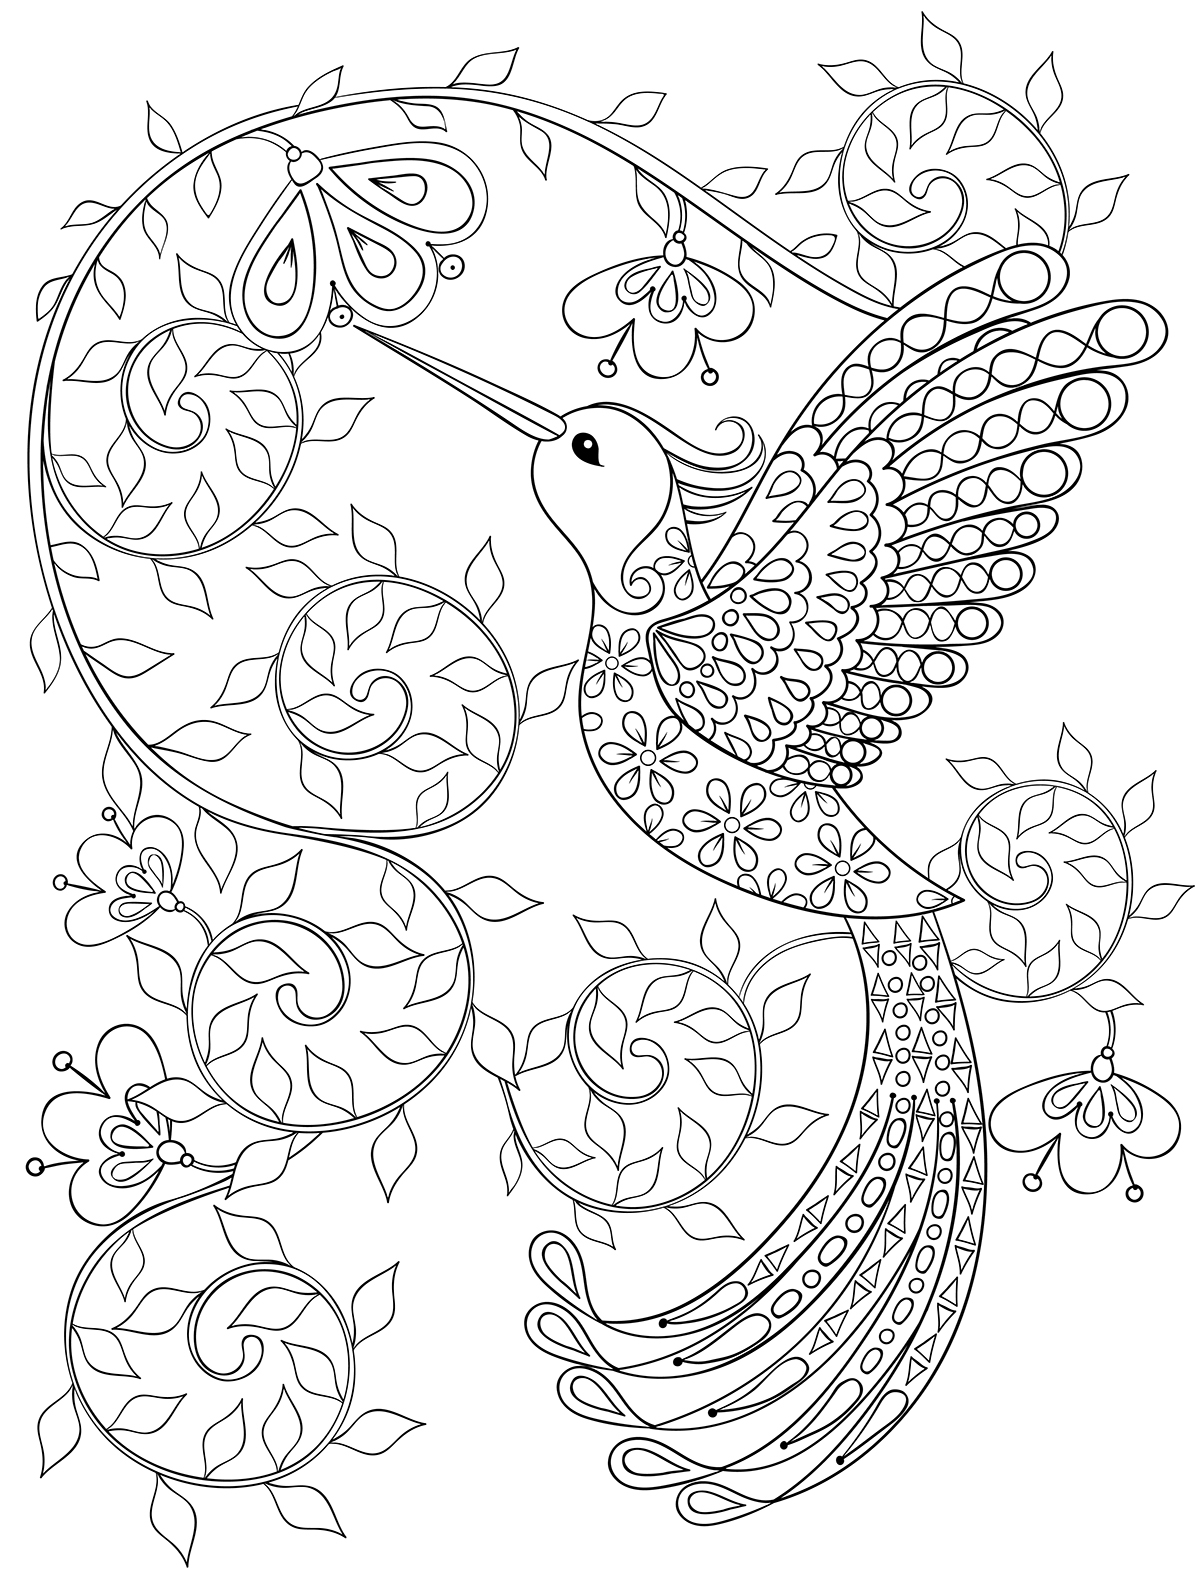 Hummingbird. Adult coloring page. on Behance